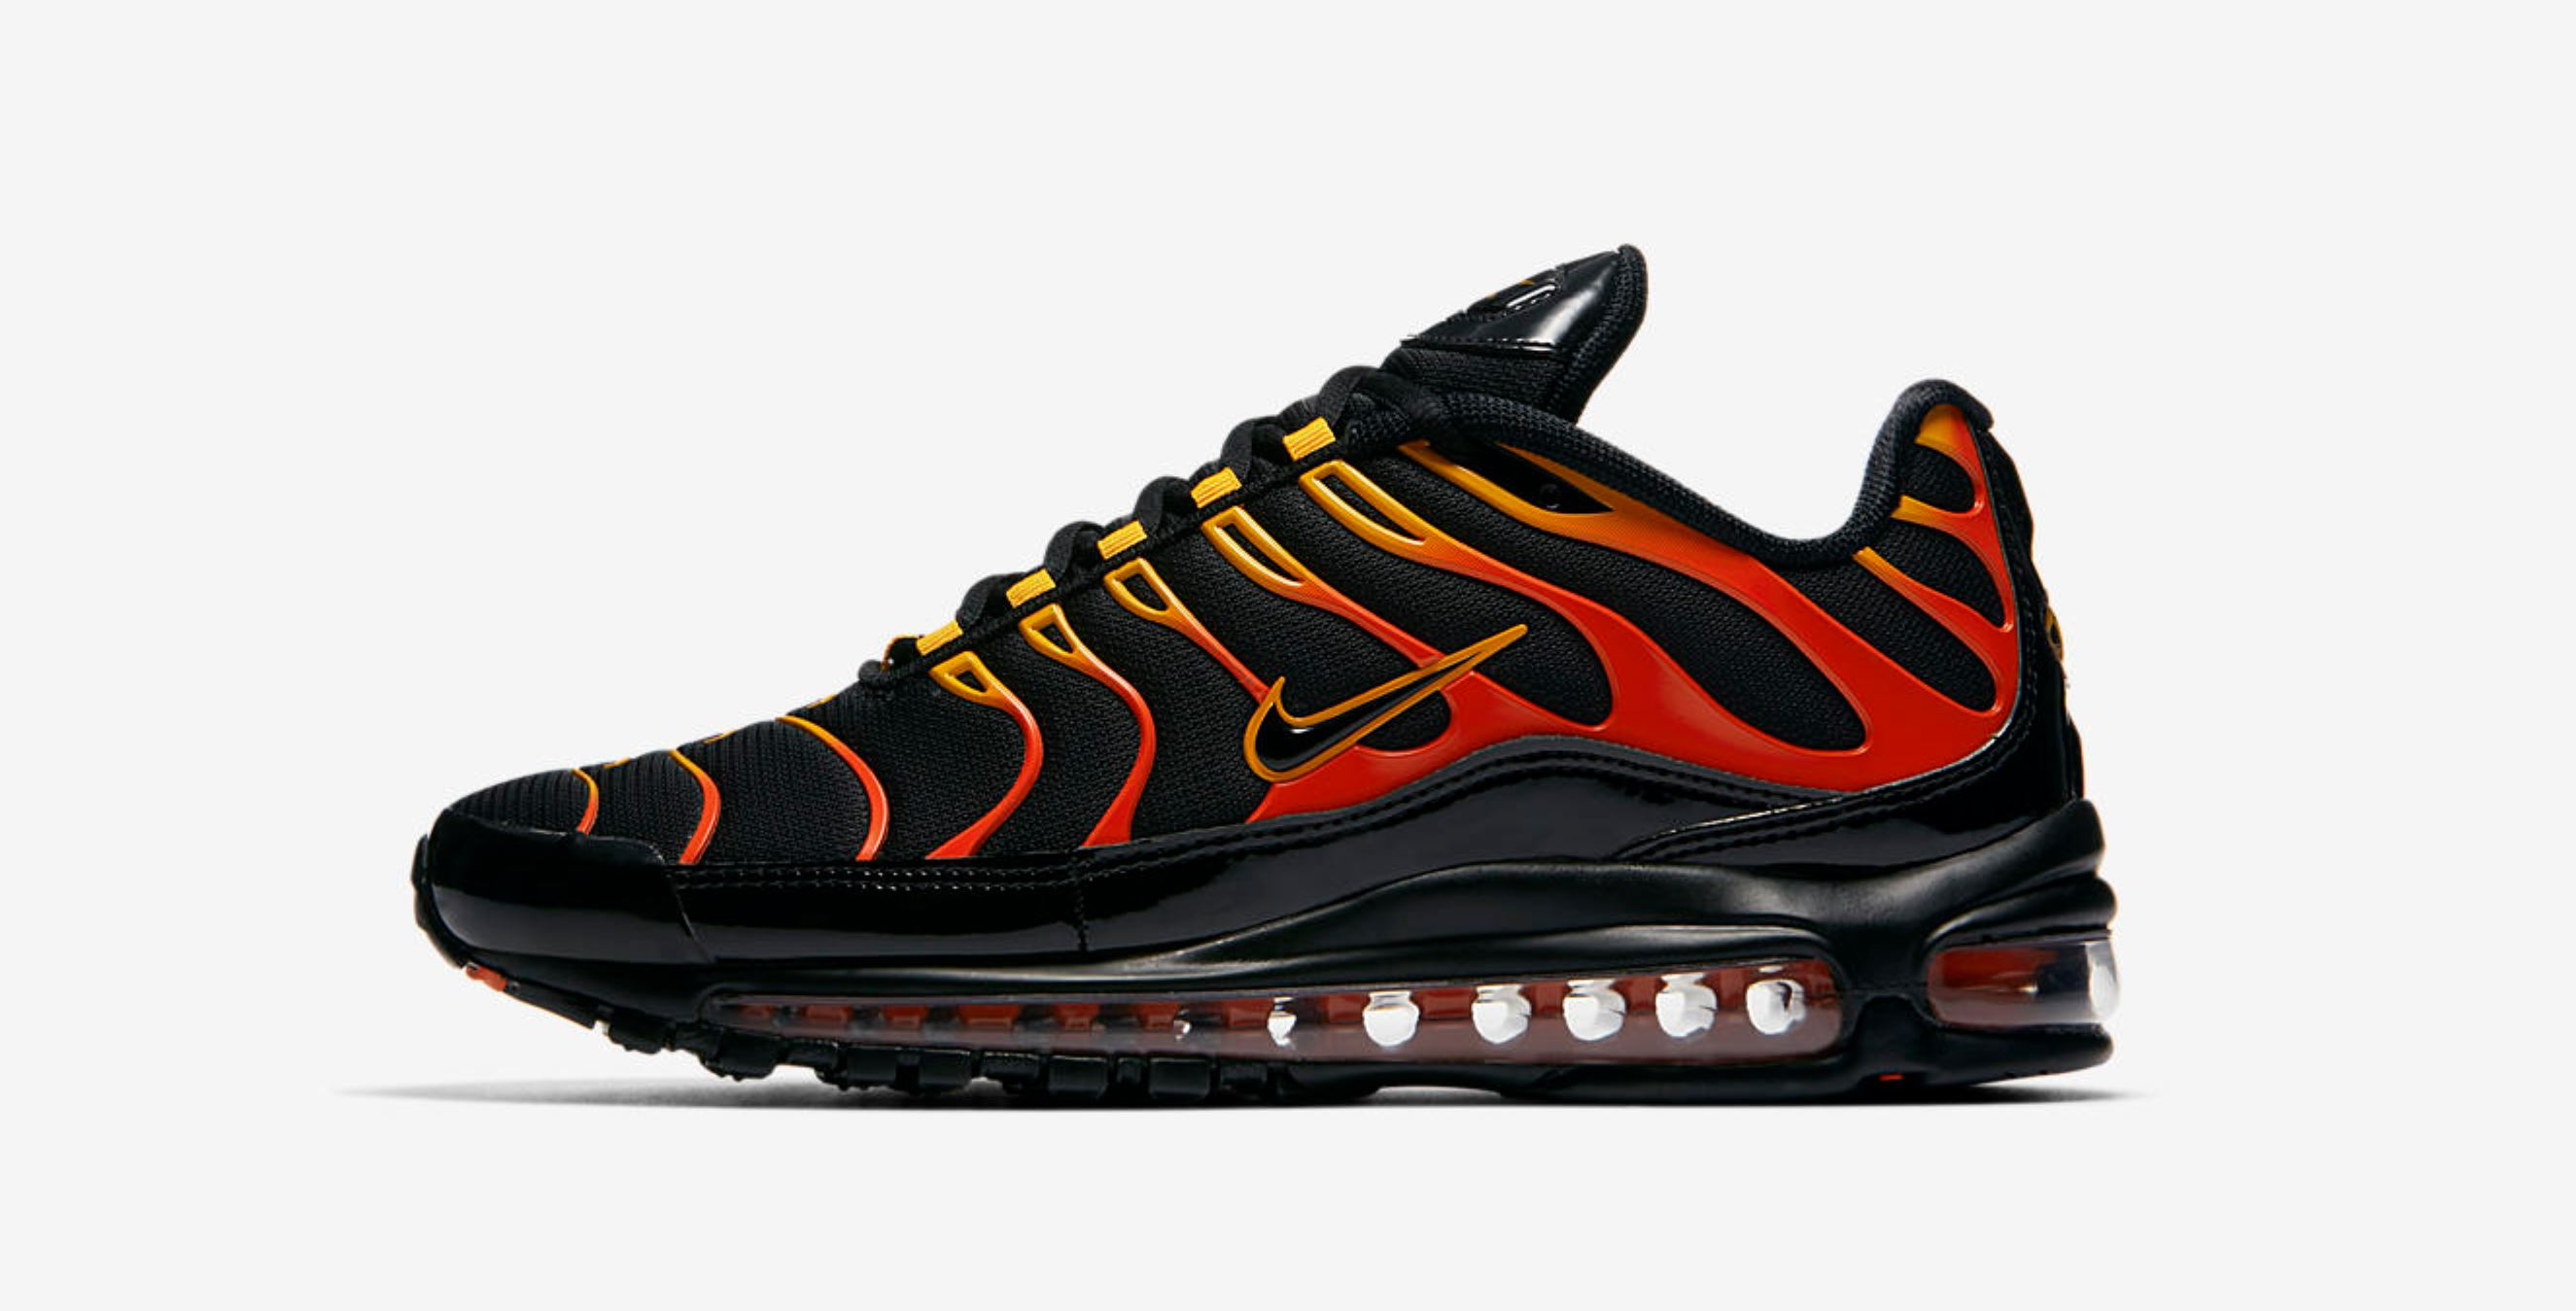 wholesale online classic fit good service This Red Hot Nike Air Max 97 Plus Hybrid Arrives Friday ...